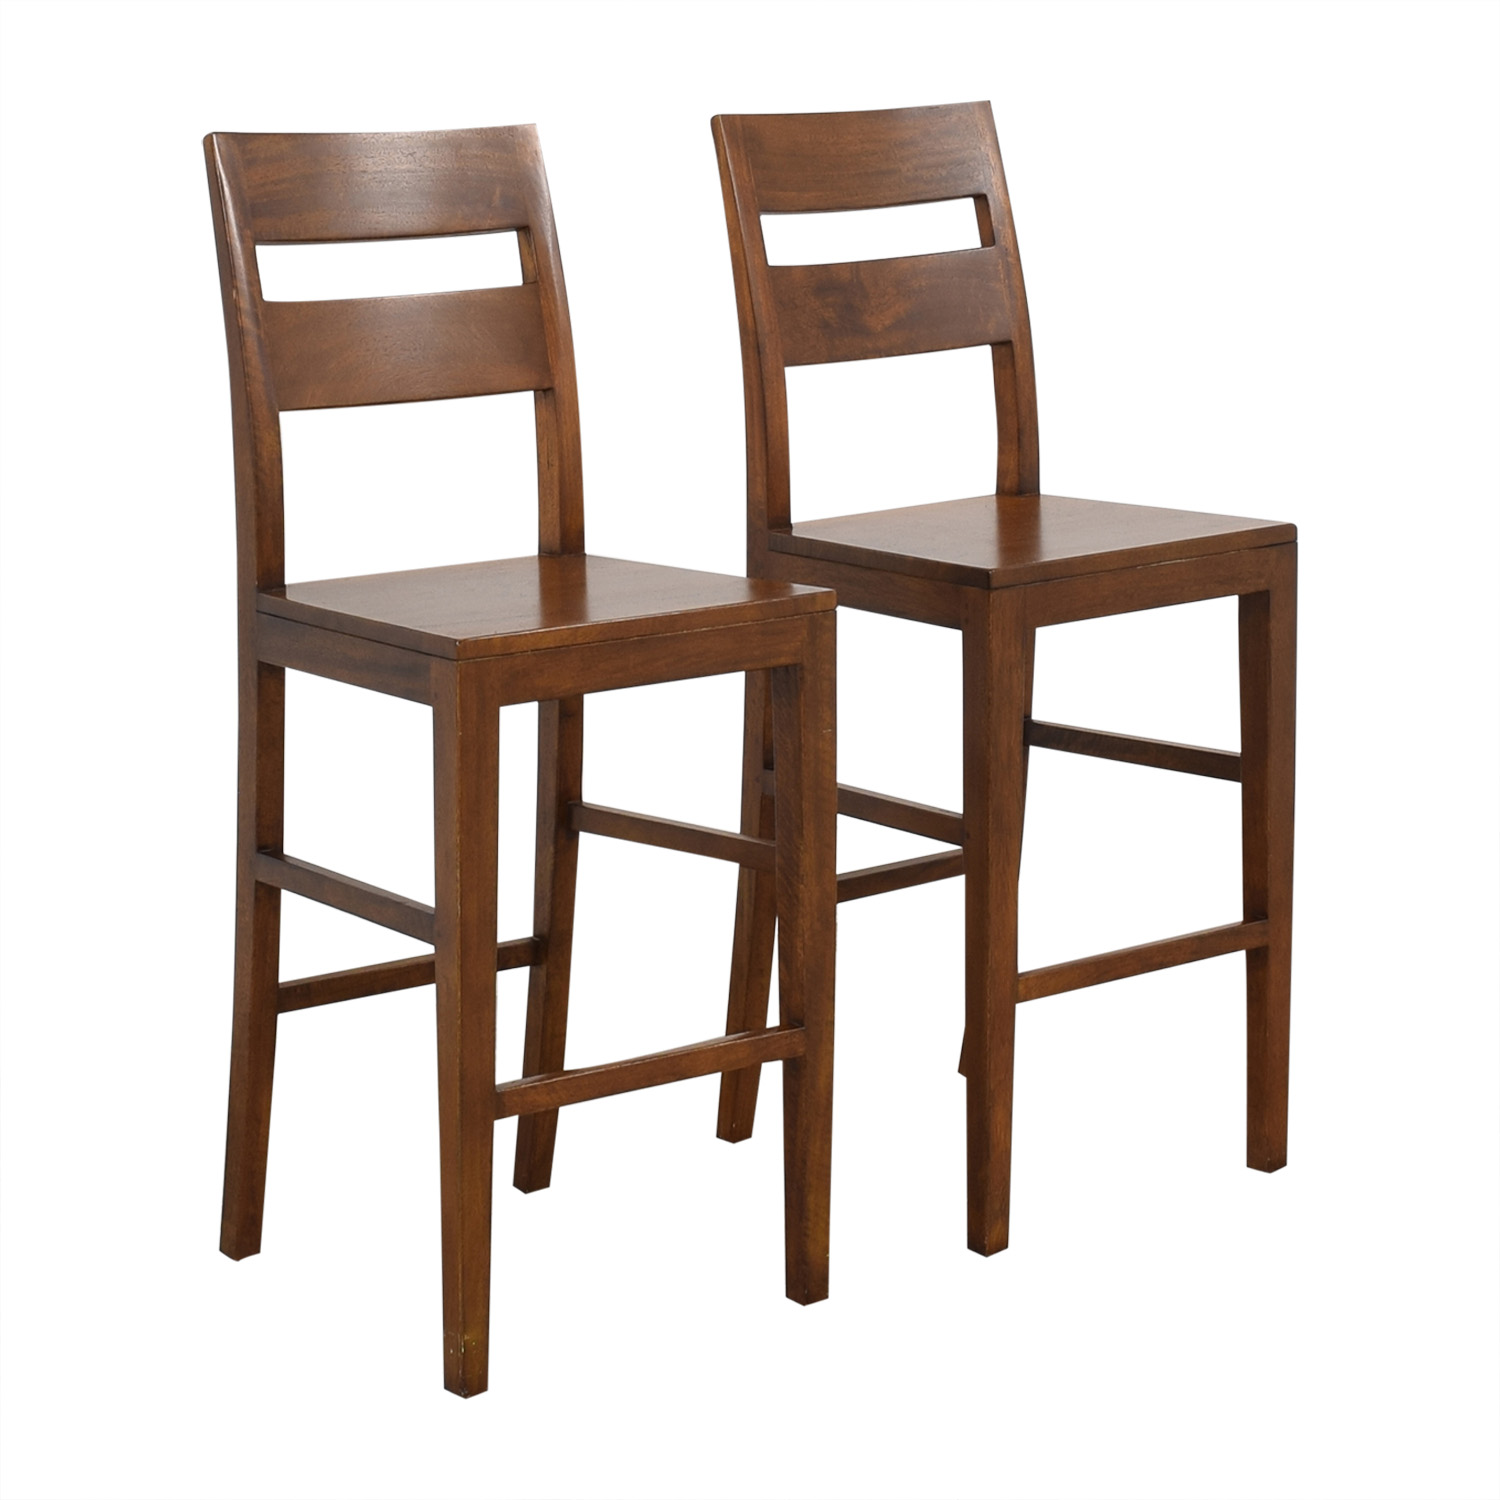 Crate & Barrel Crate and Barrel Counter Stools dimensions